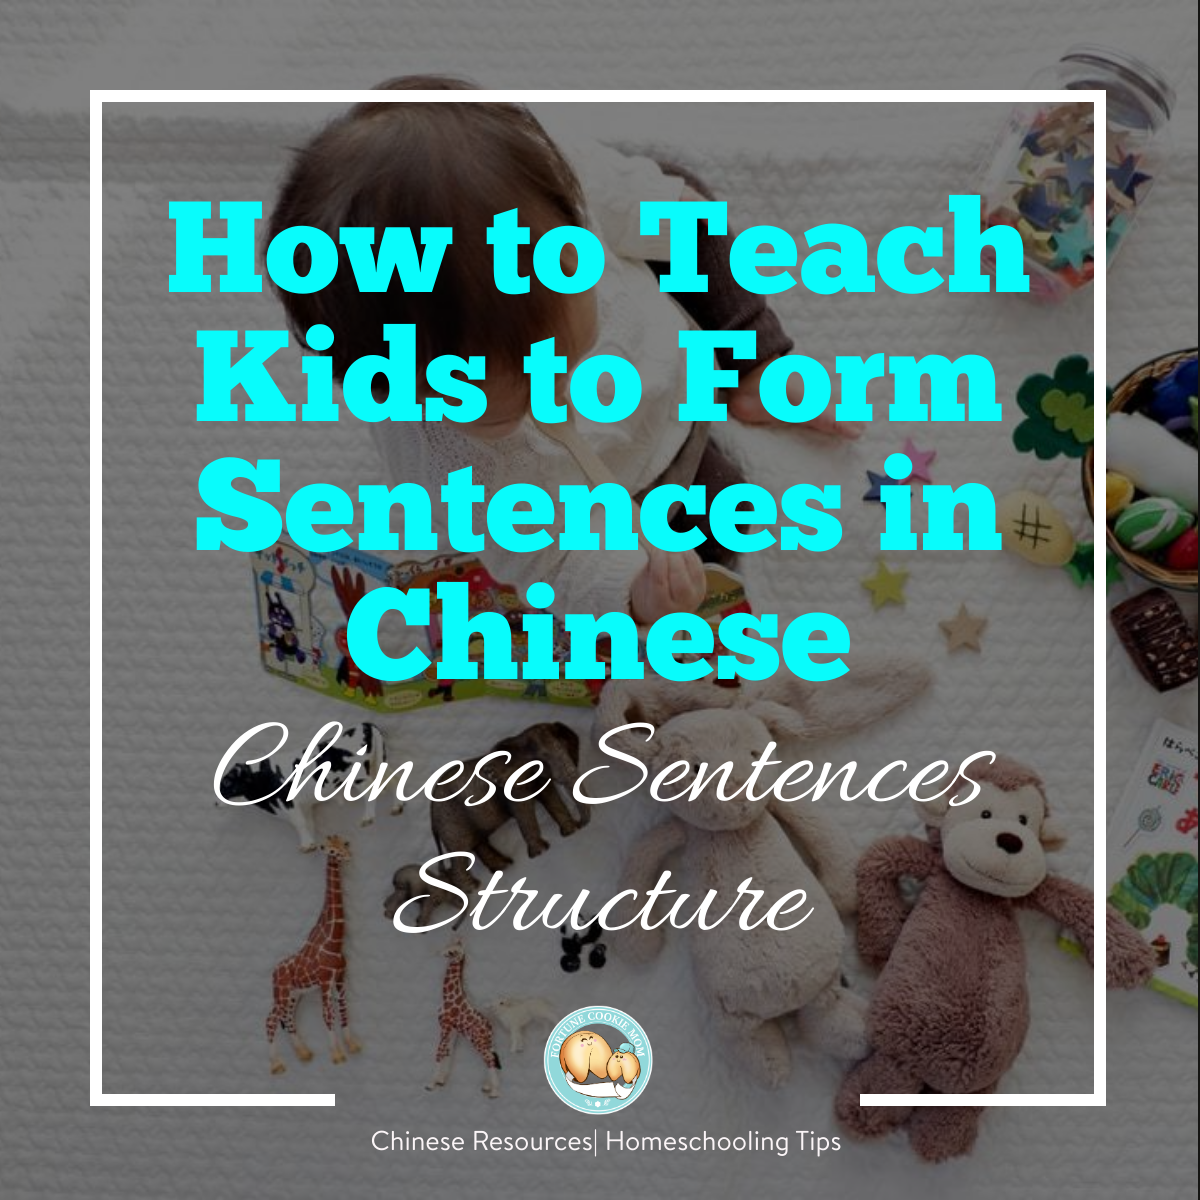 Chinese Sentence Structure: How to Teach Kids to Form Sentences in Chinese?